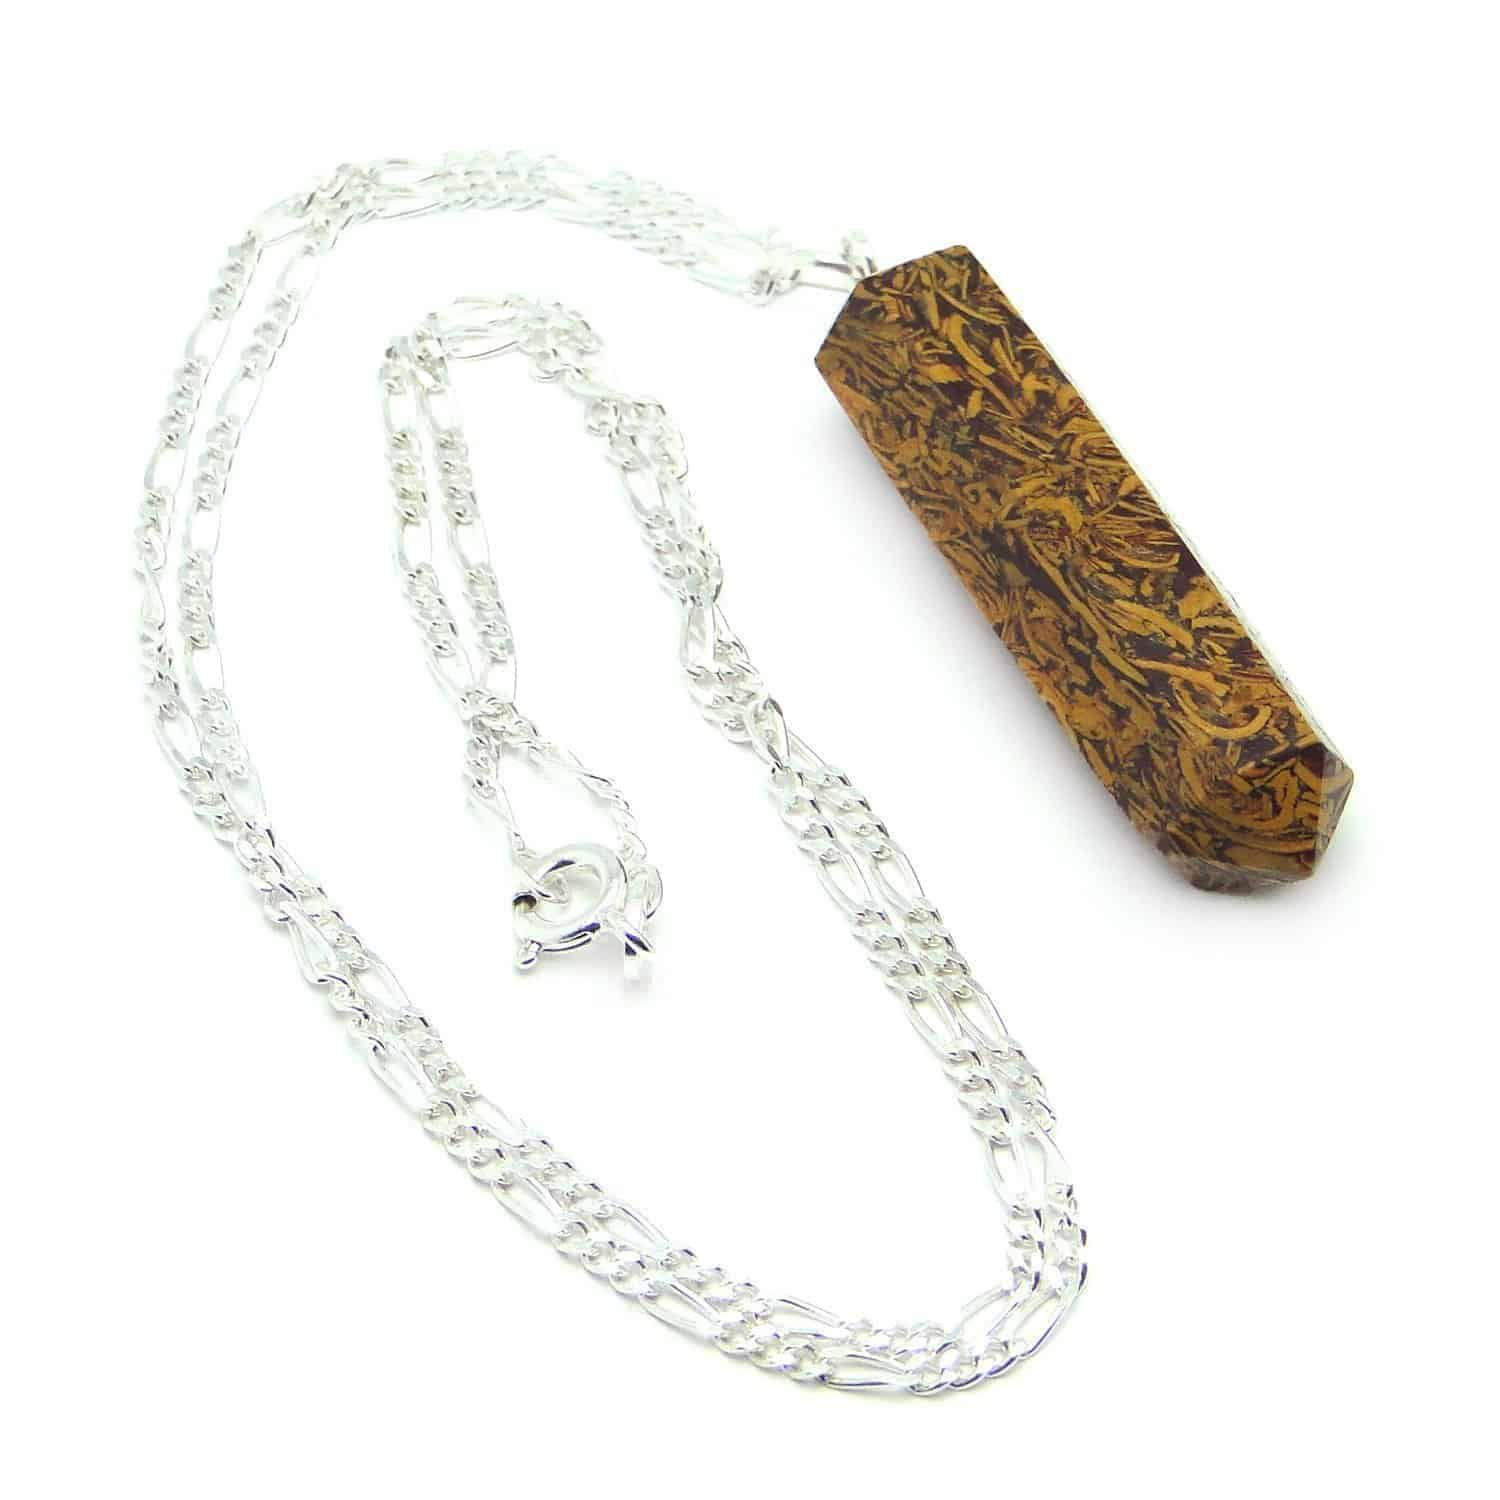 Snake Jasper Pencil Pendant Nature's Crest PP015 ₹ 249.00